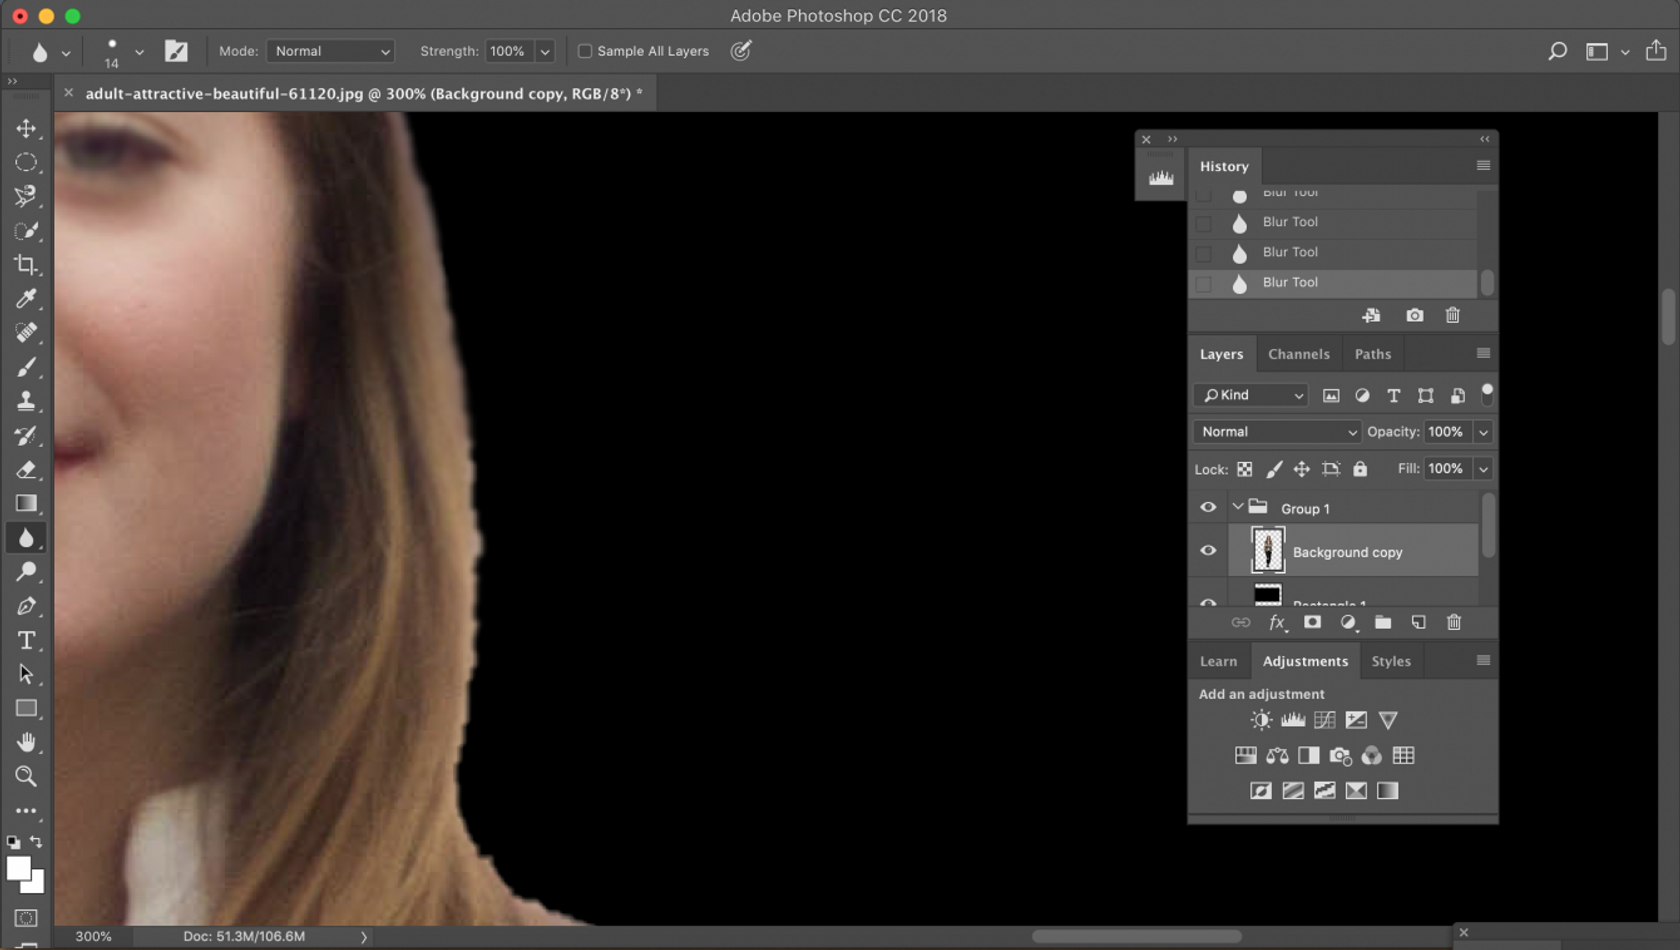 How to Smooth Edges in Photoshop: Photoshop Feather and Other Tools Image12